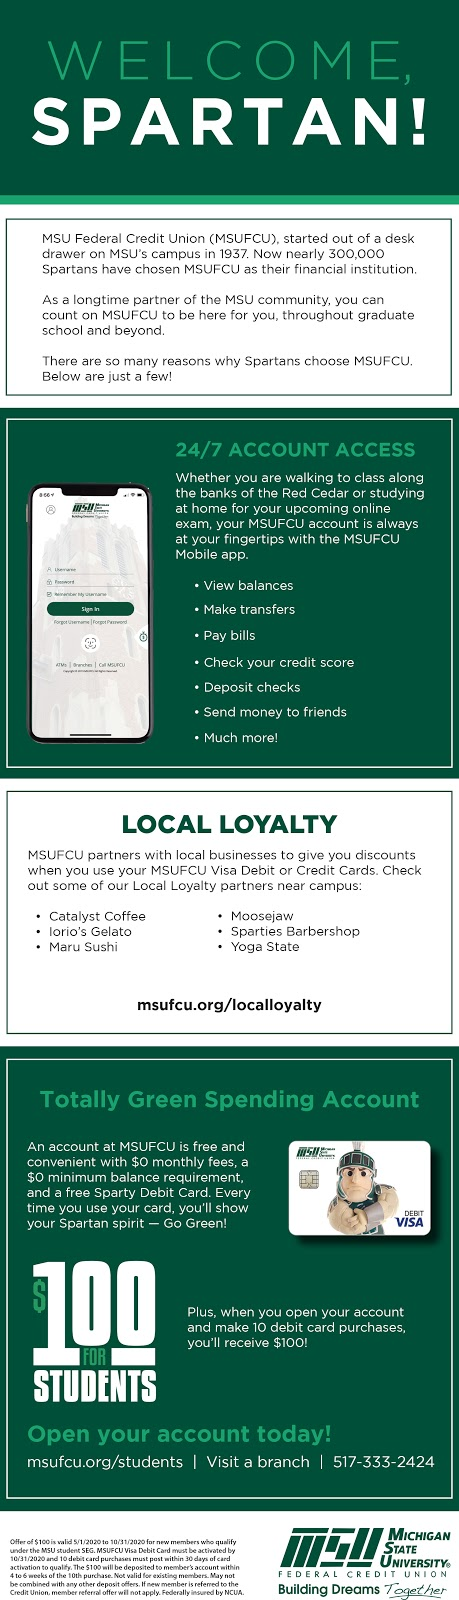 Click here to go to the MSUFCU website and learn more!